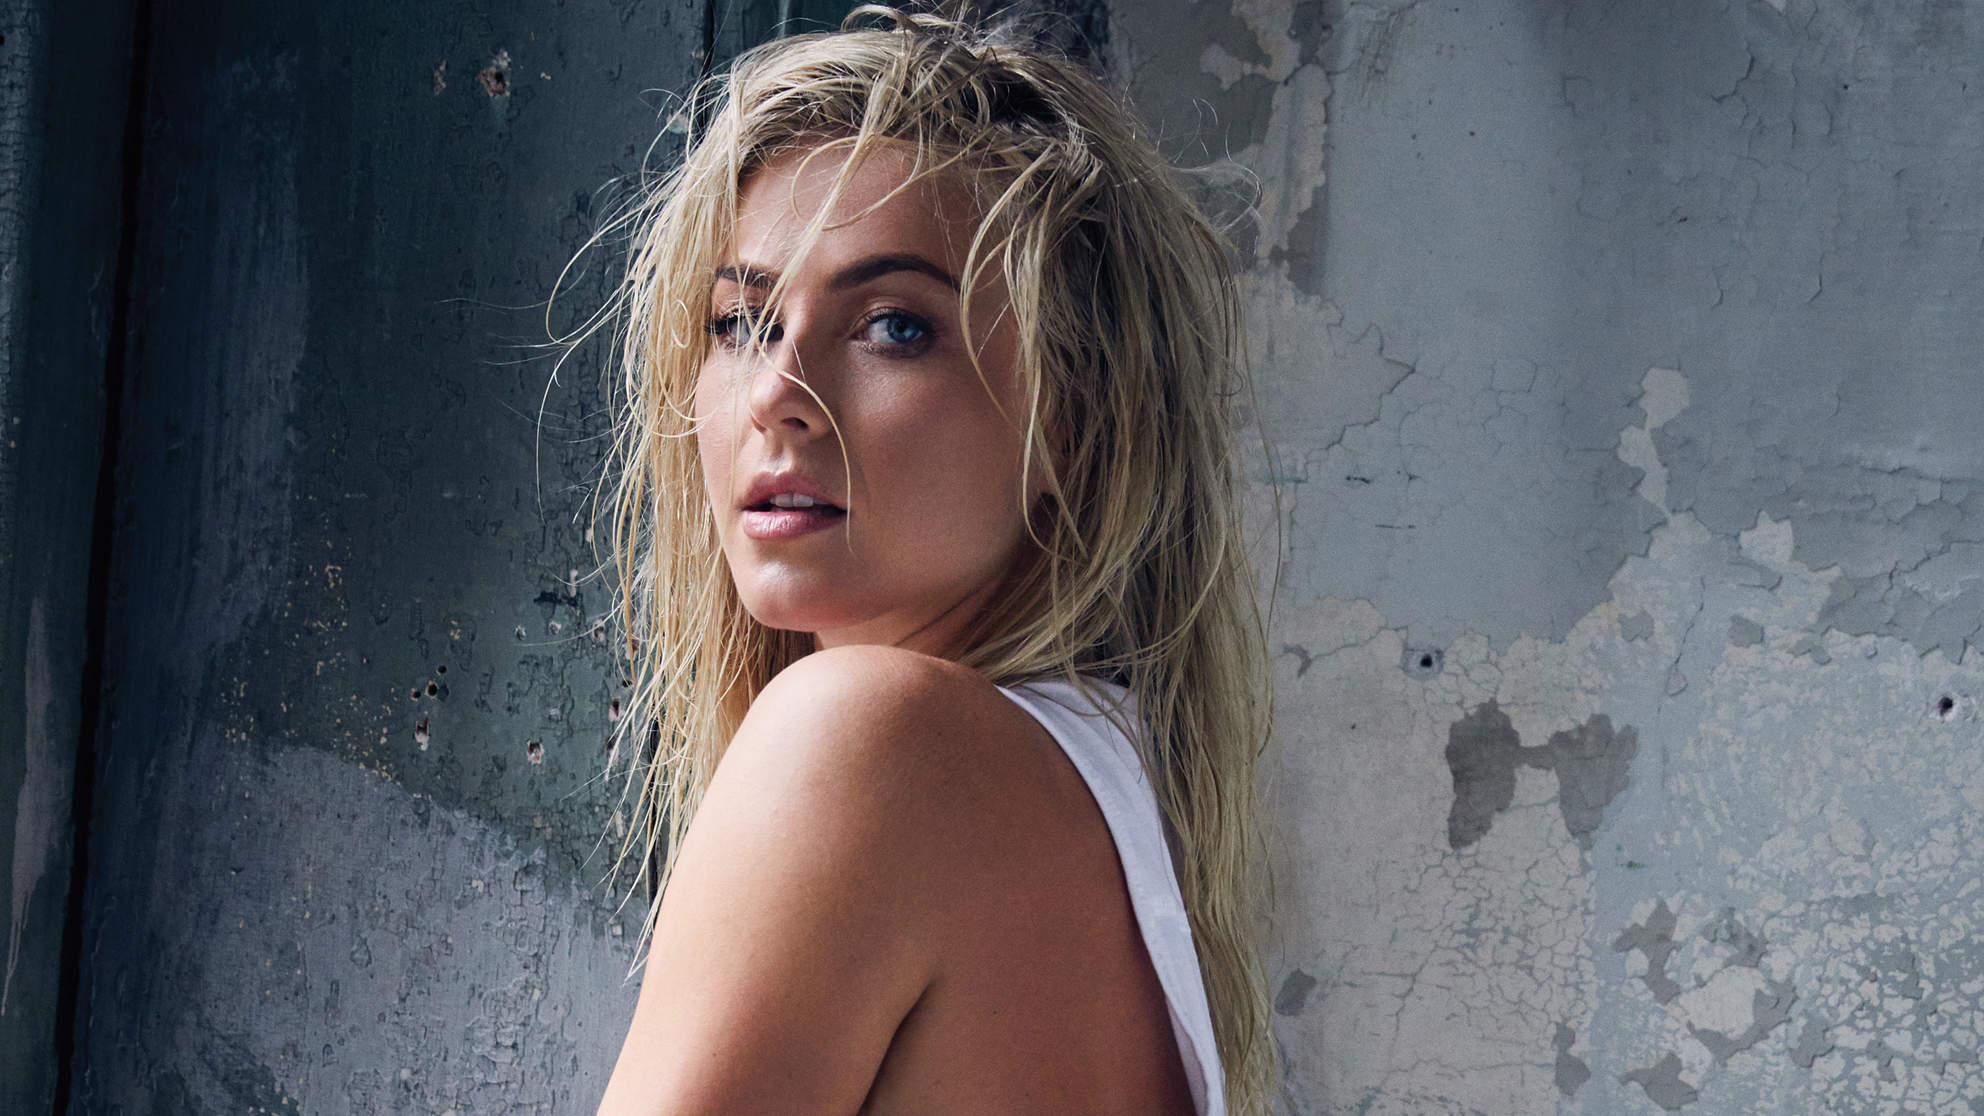 Photos Julianne Hough nude photos 2019